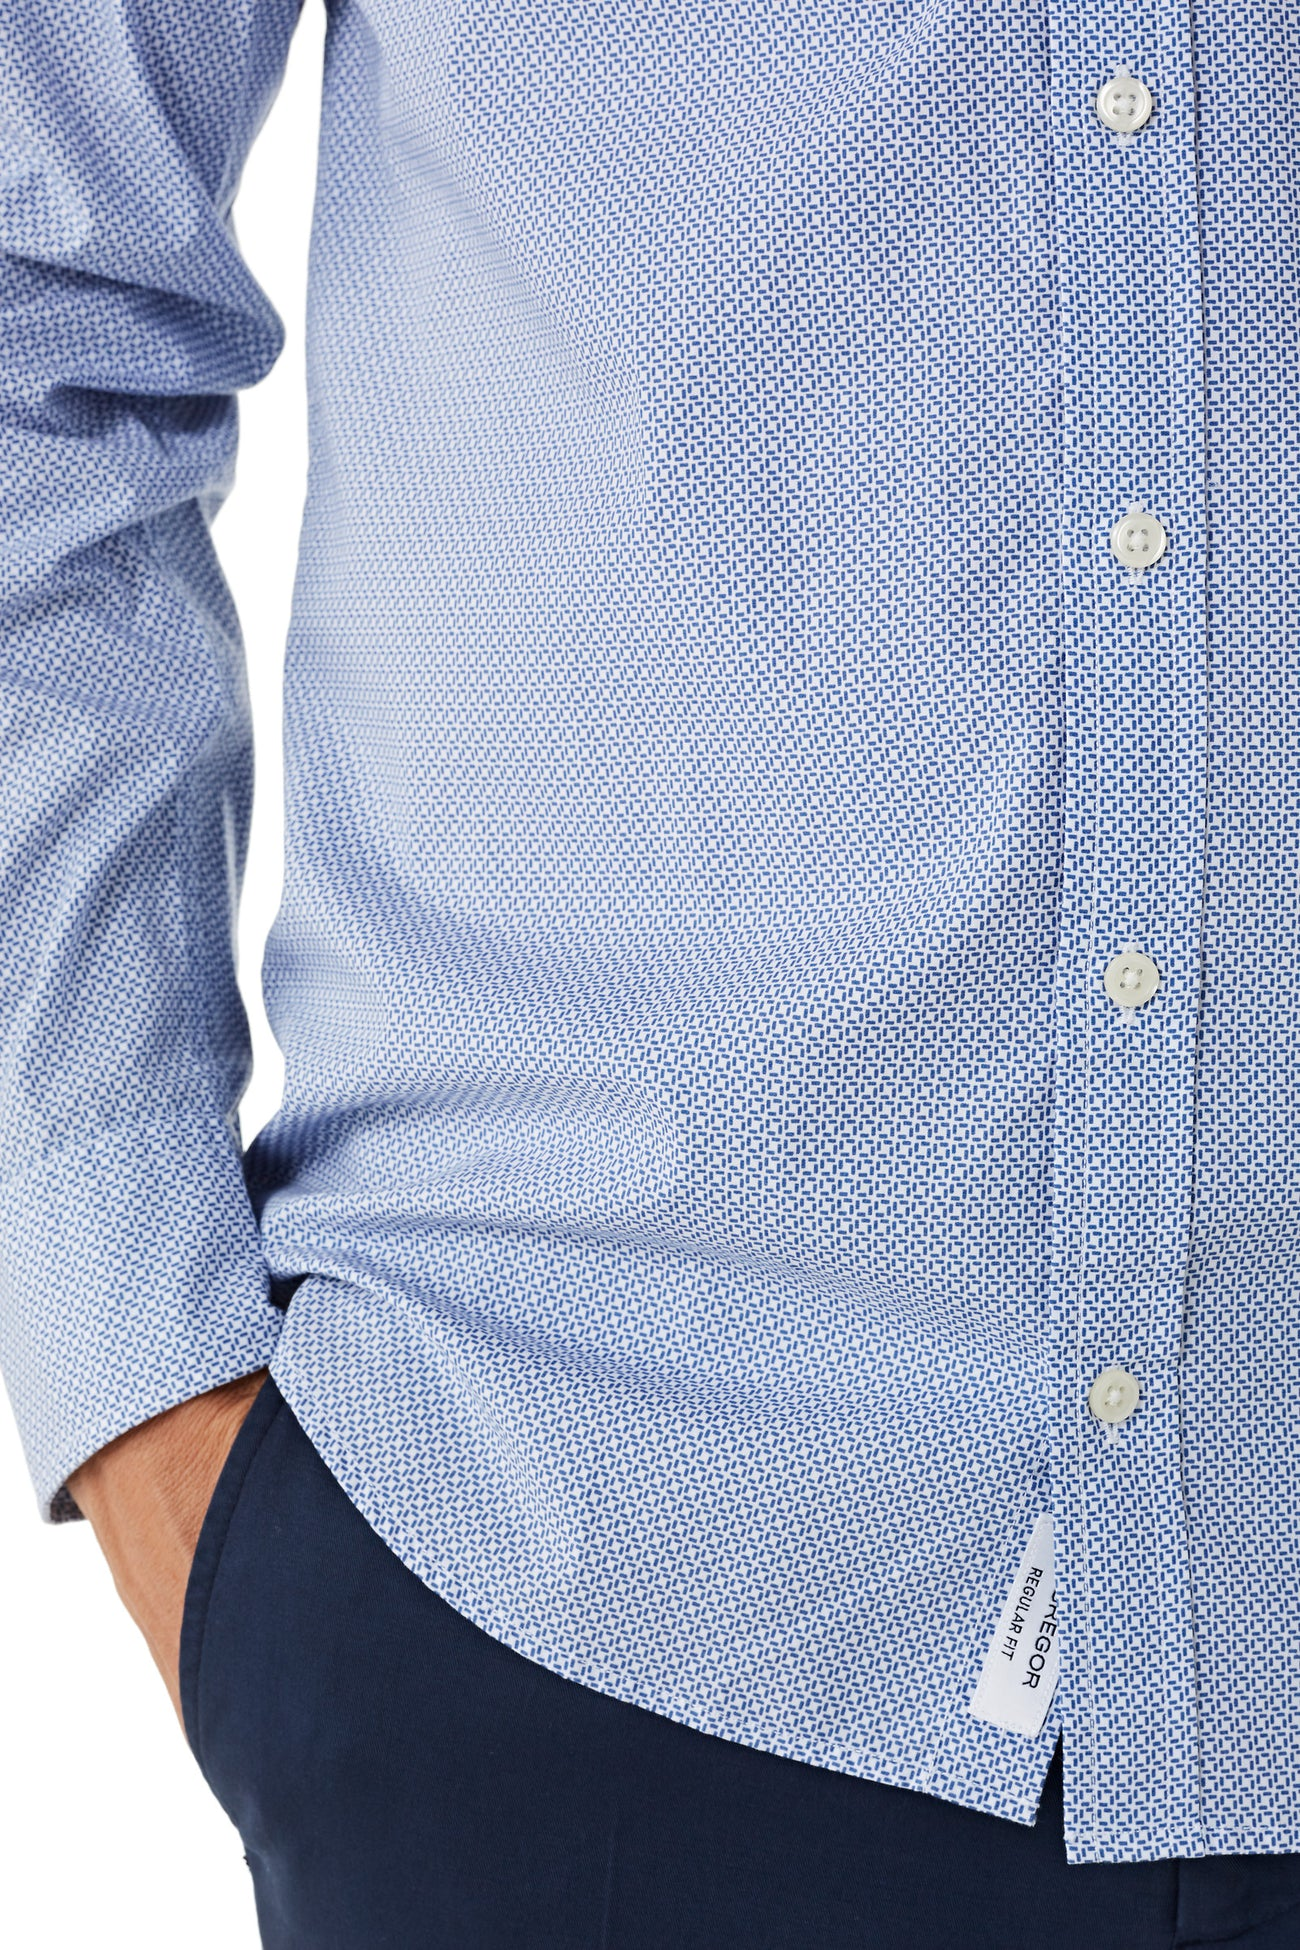 Cotton Shirt with Minimal Print Regular Fit